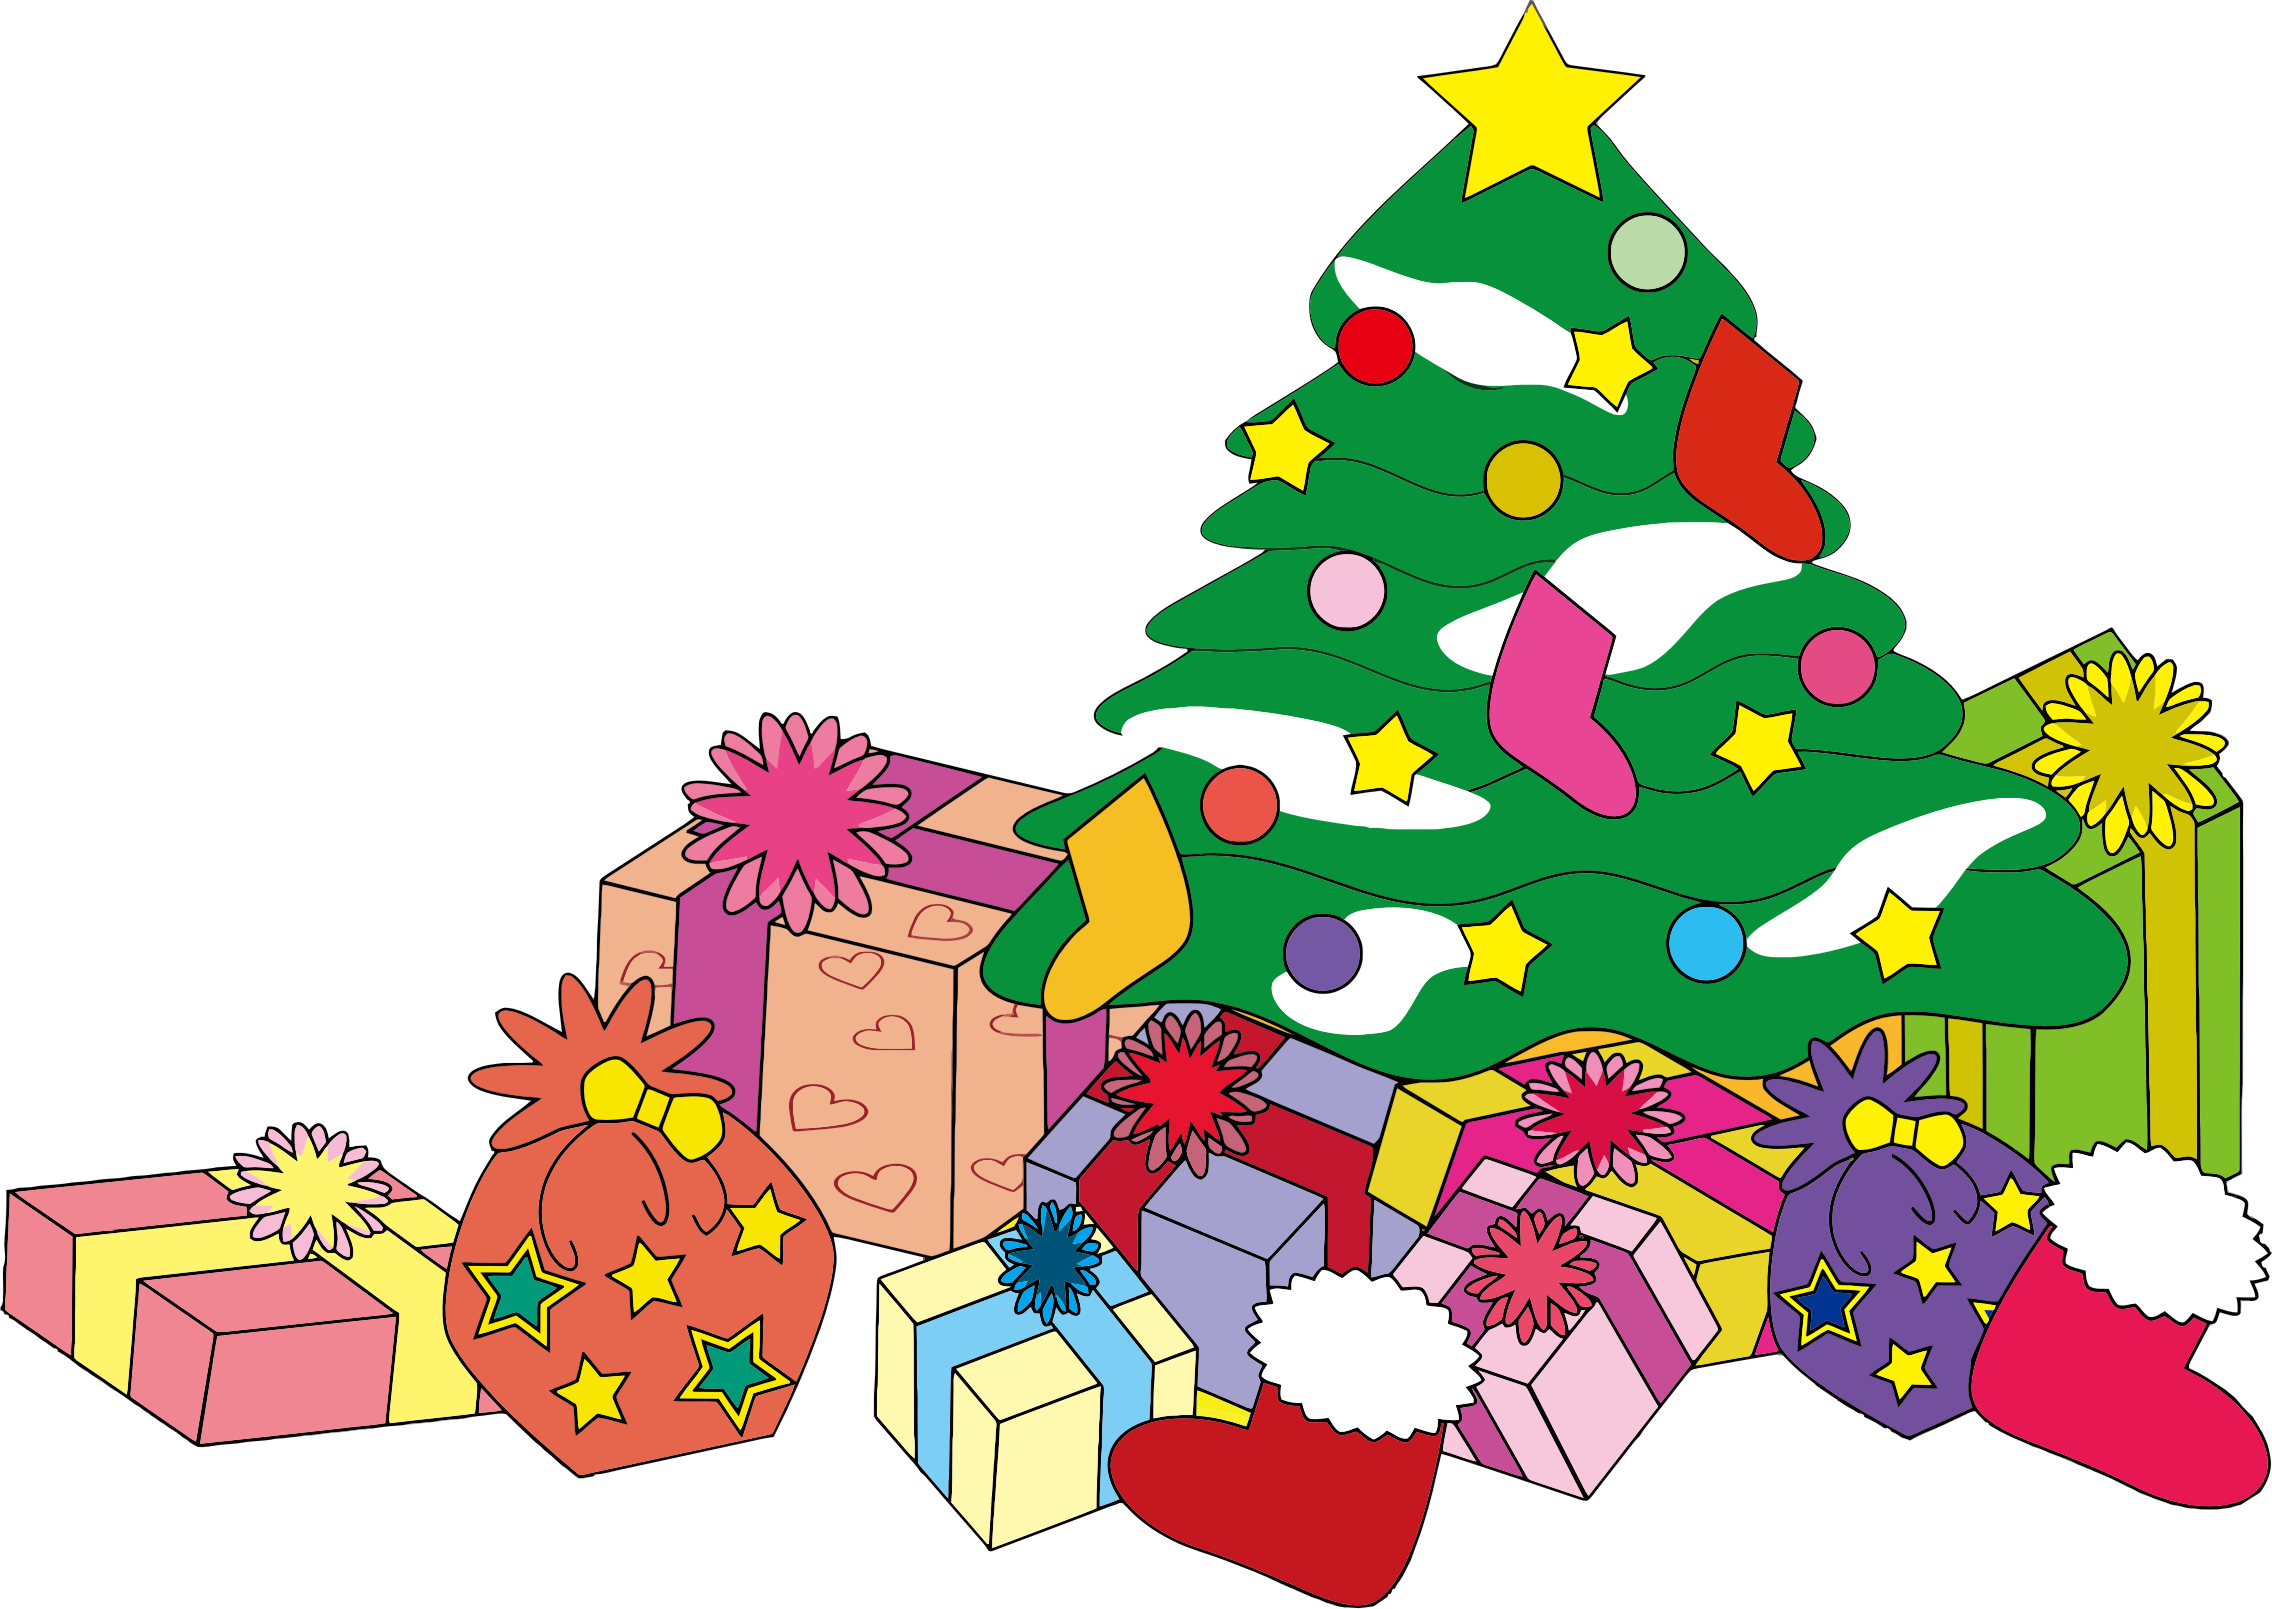 Clipart toys xmas, Clipart toys xmas Transparent FREE for.